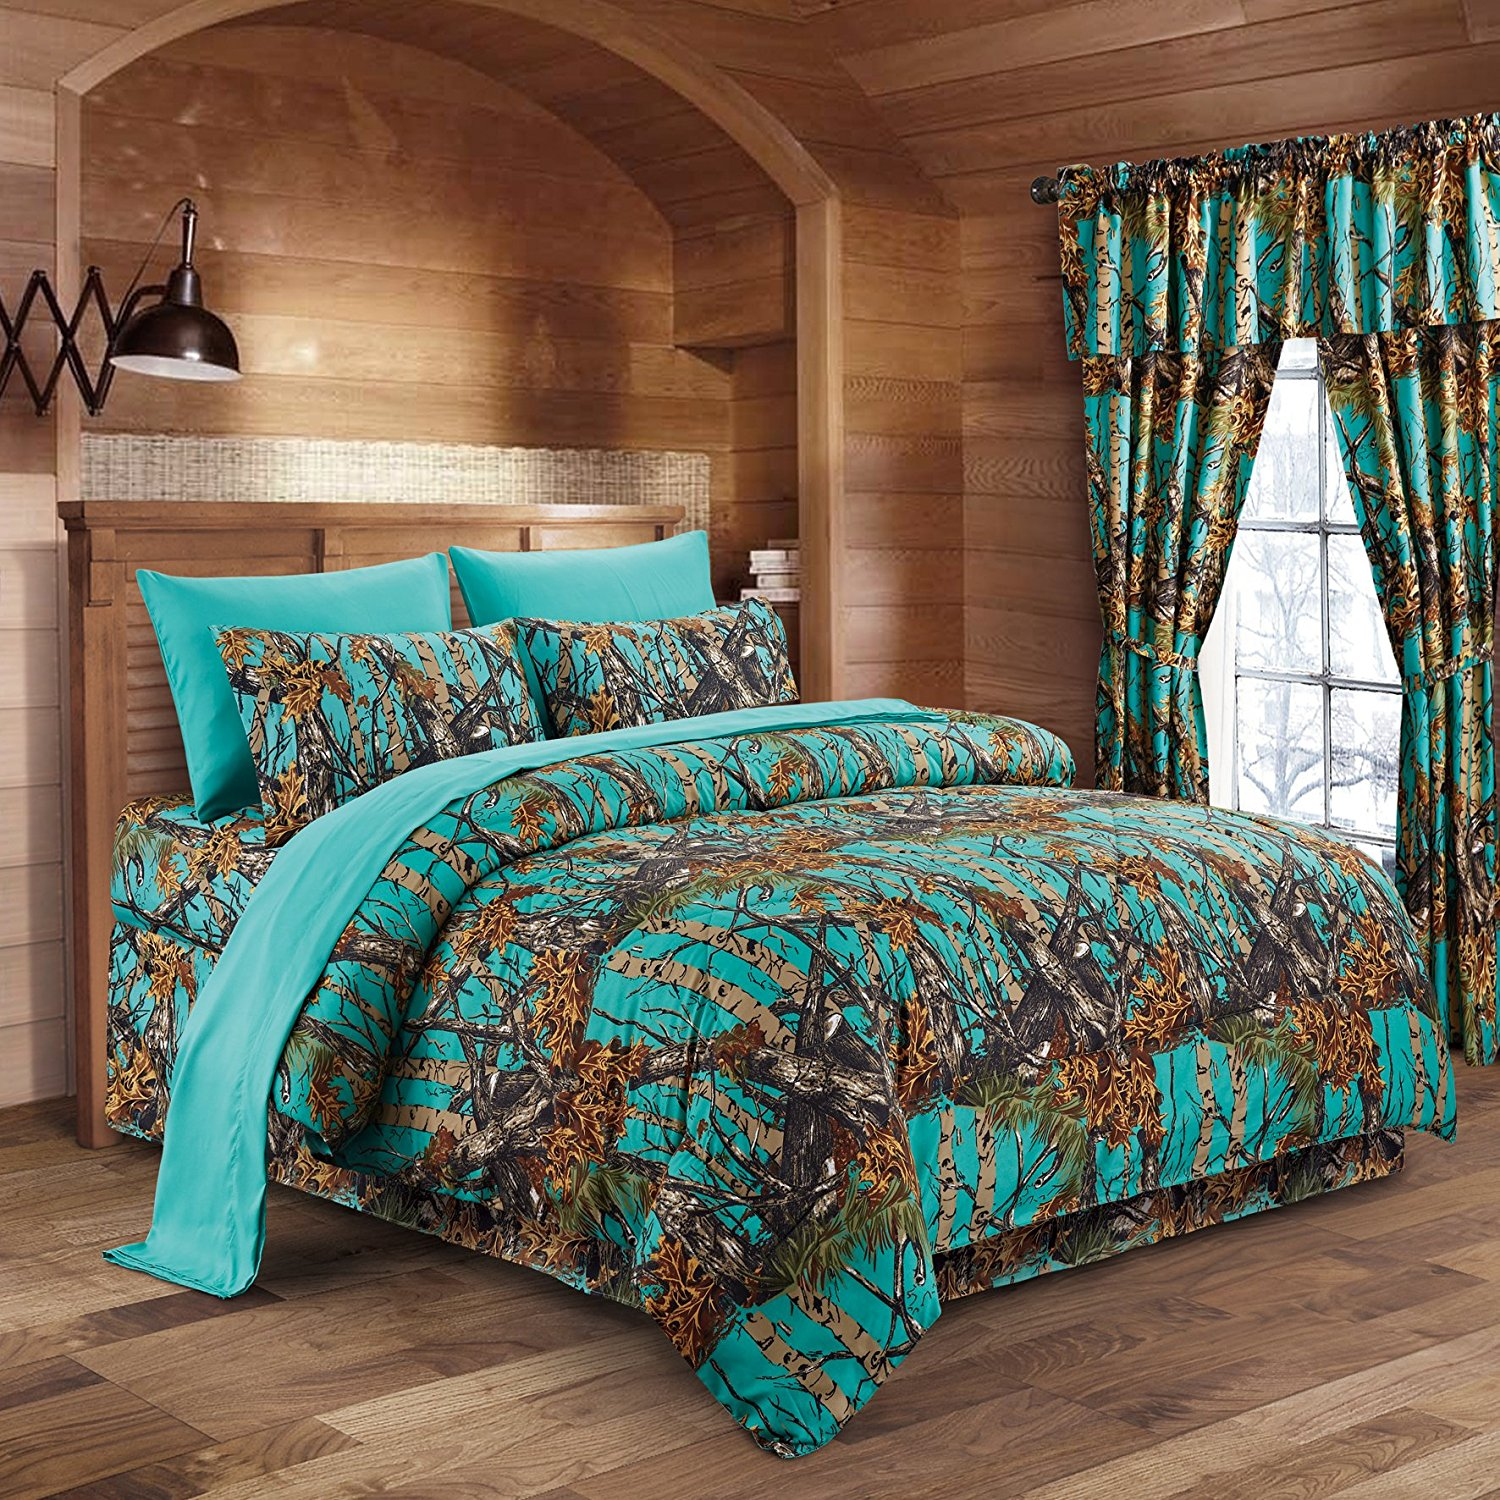 Regal Comfort The Woods Teal Camouflage King 8pc Premium Luxury Comforter, Sheet, Pillowcases, and Bed Skirt Set by Camo Bedding Set For Hunters Cabin or Rustic Lodge Teens Boys and Girls